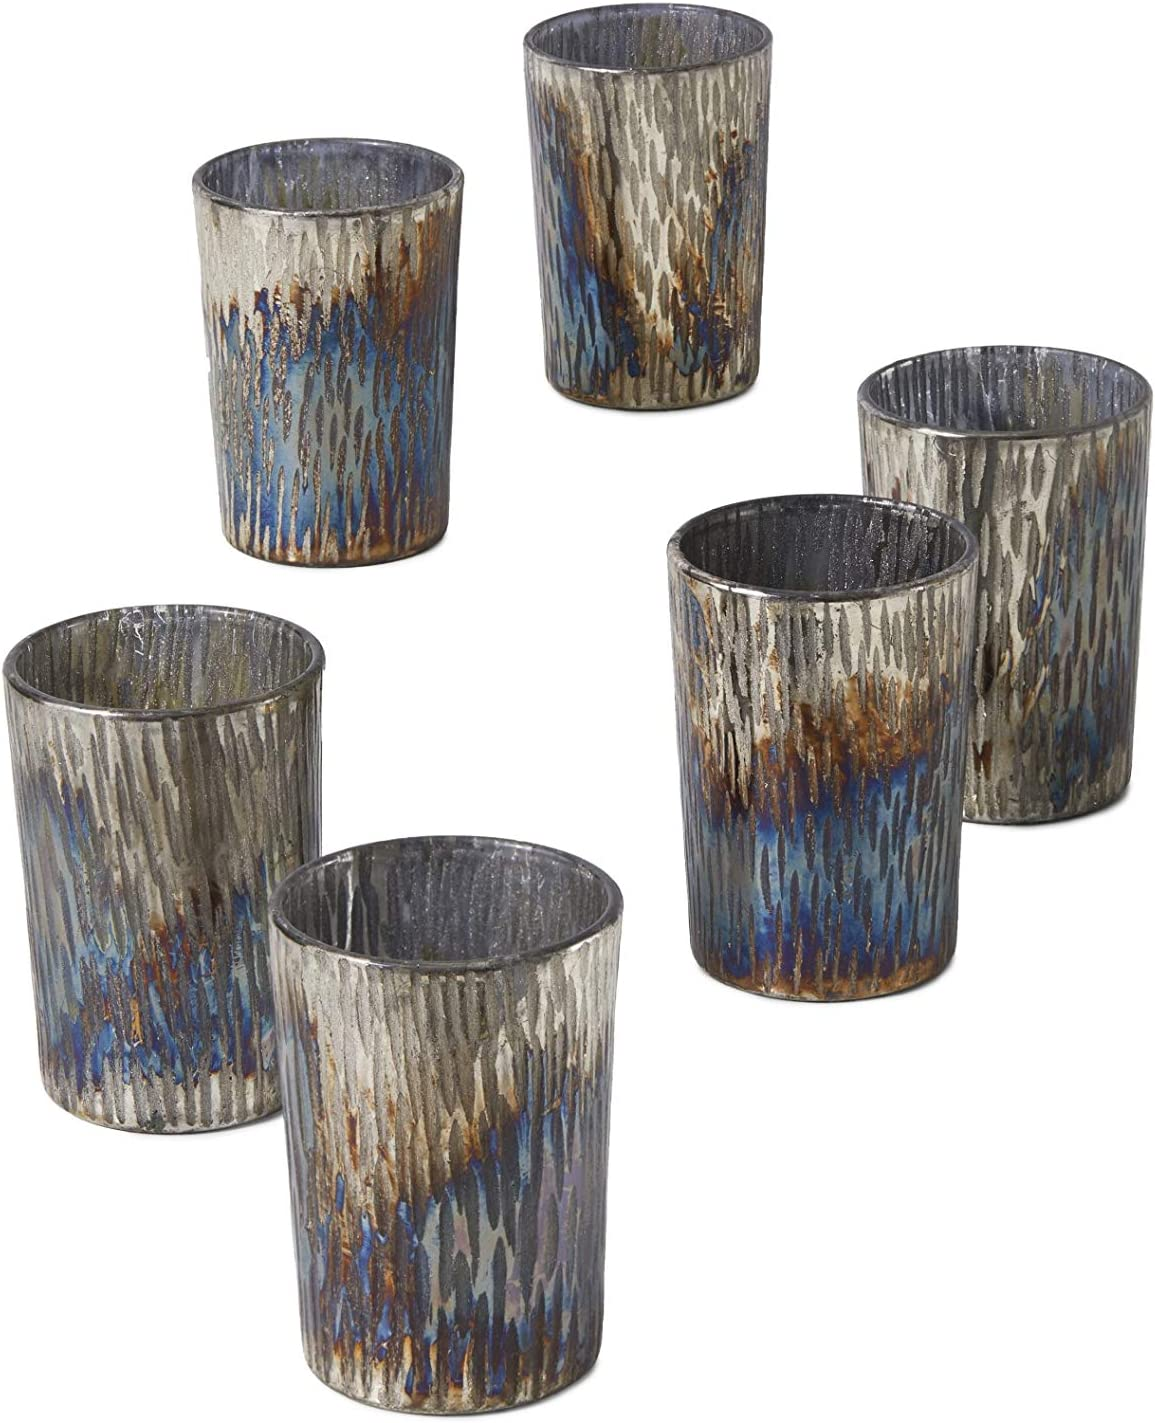 Serene Spaces New arrival Living Set of 6 Oxidized Glass Albuquerque Mall Holde Votive Candle